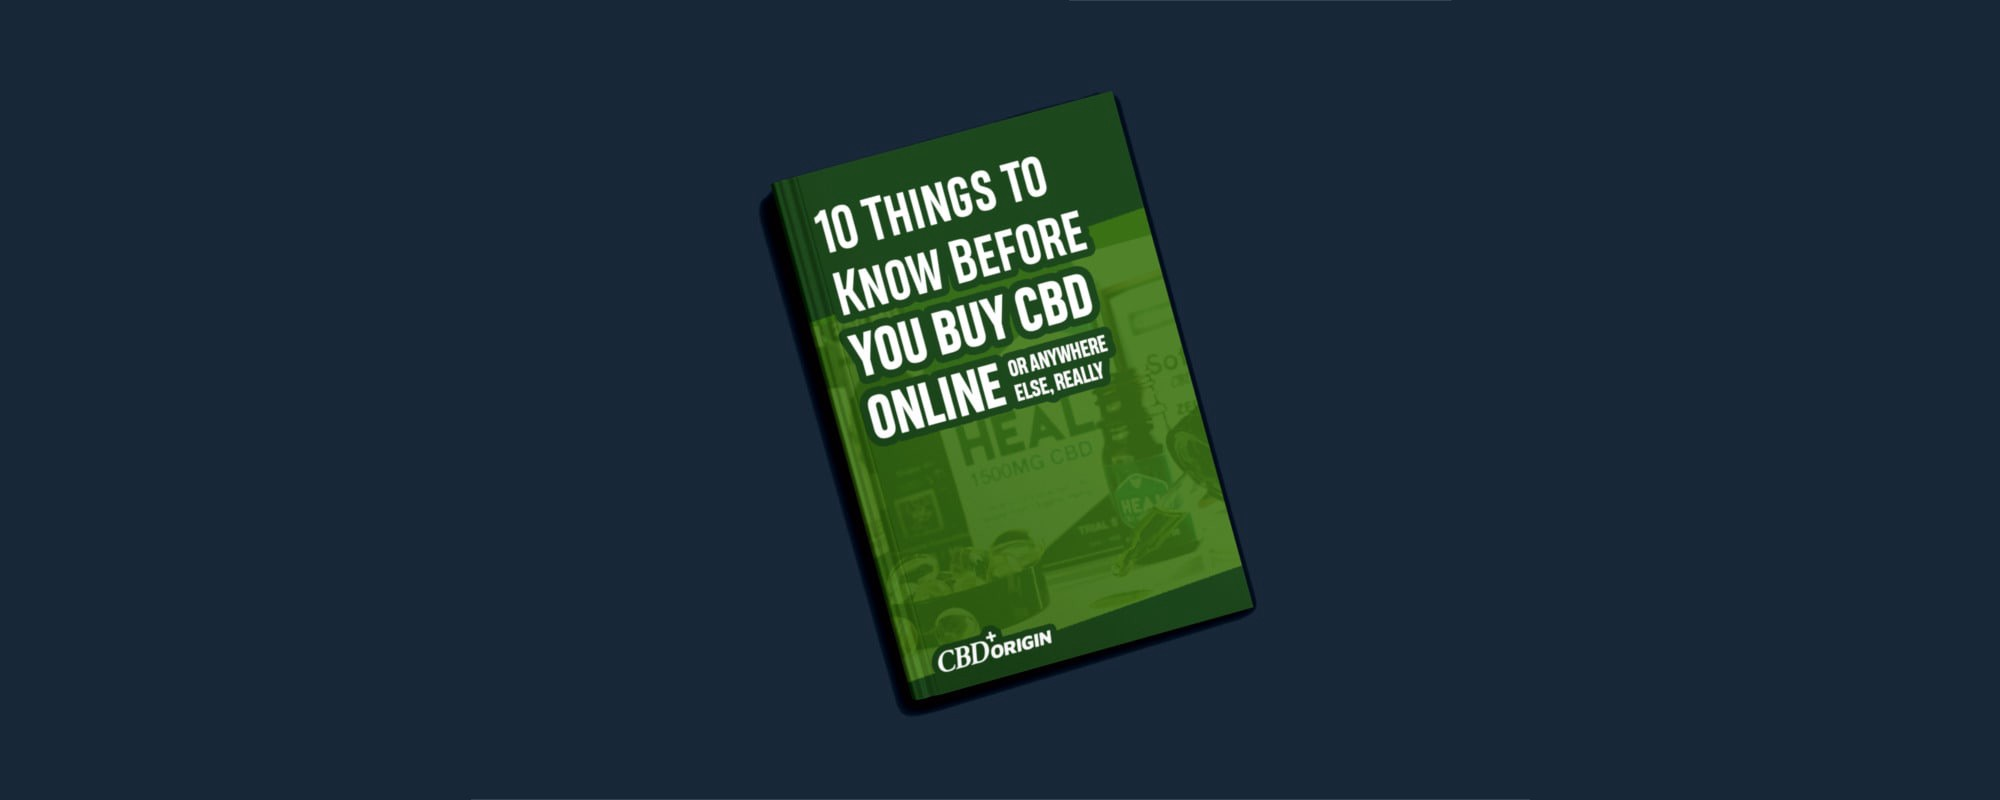 d898111bc53 10 Things to Know Before You Buy CBD Online (or anywhere